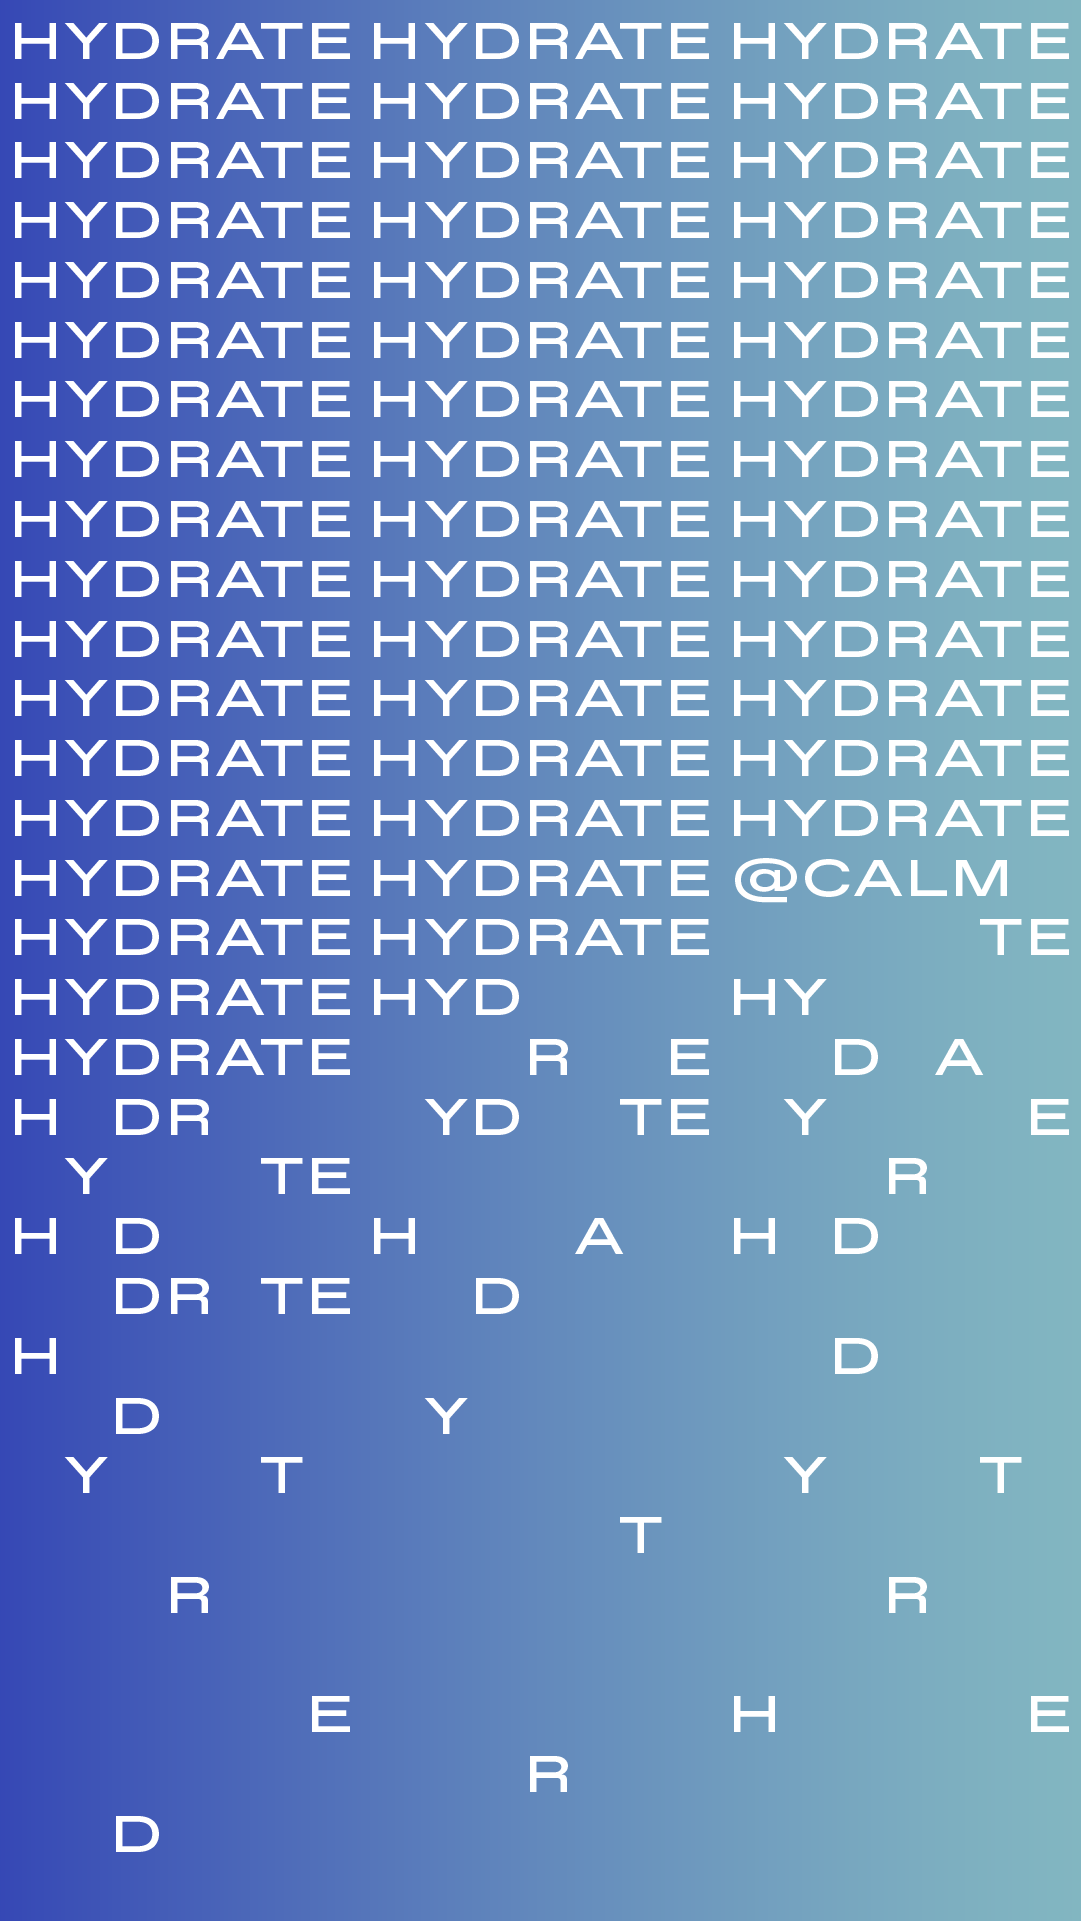 Hydrate-front_VEDROS